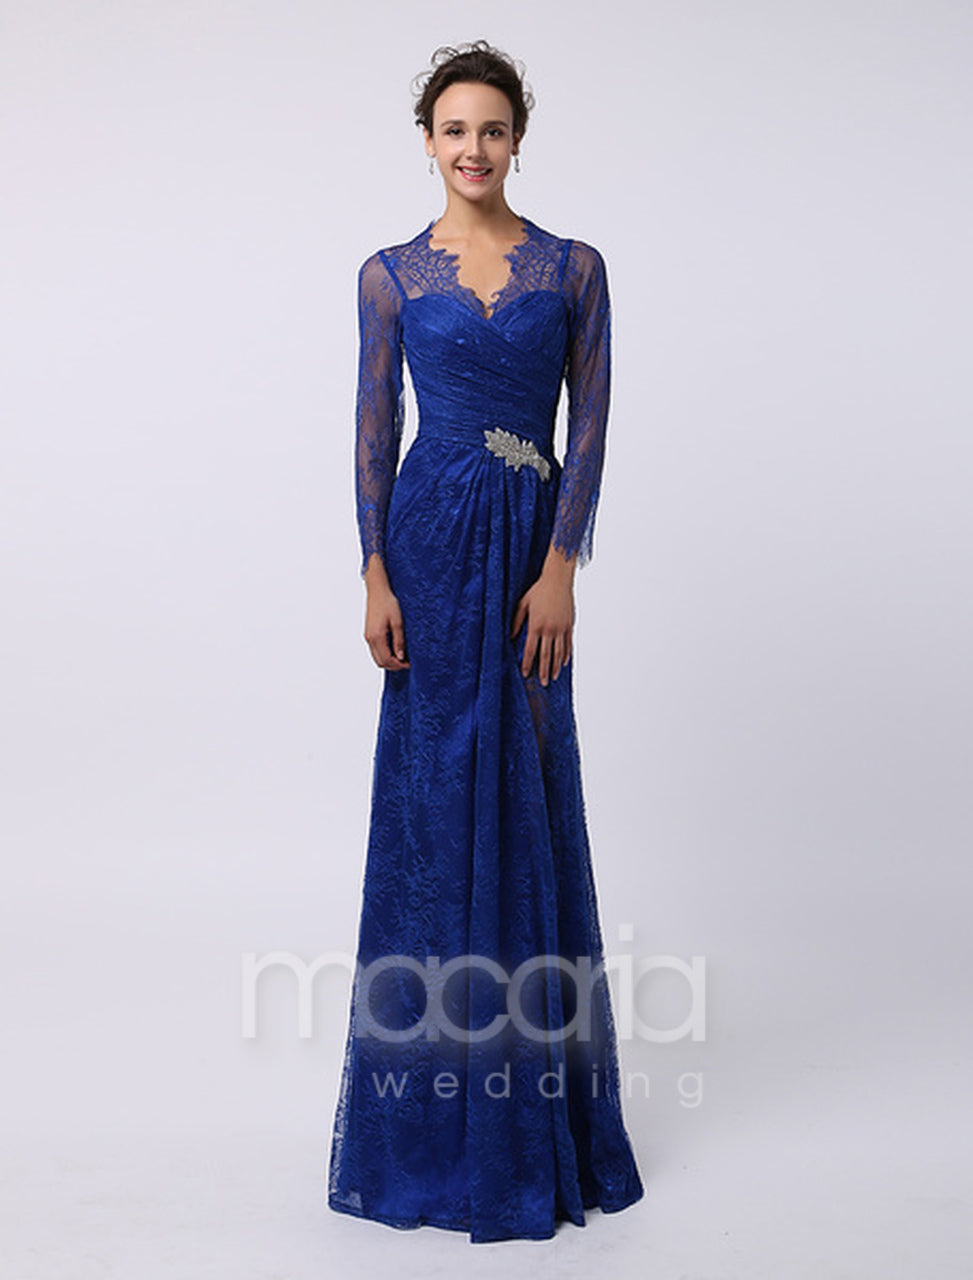 0e30abb1e91 Evening Dresses - V-Neck Illusion Sweetheart A-Line